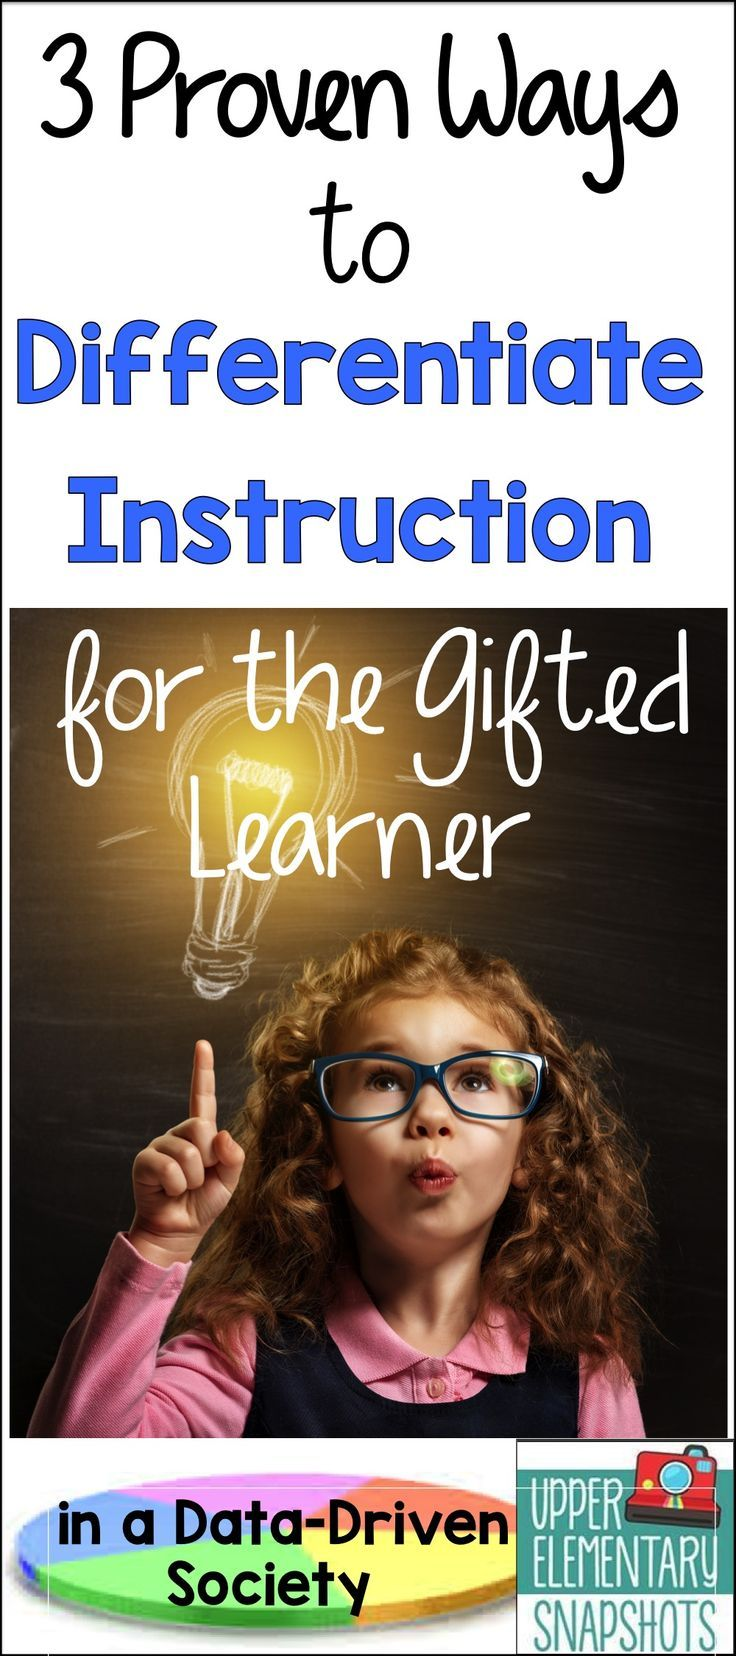 3 Proven Ways to Differentiate Instruction for the Gifted